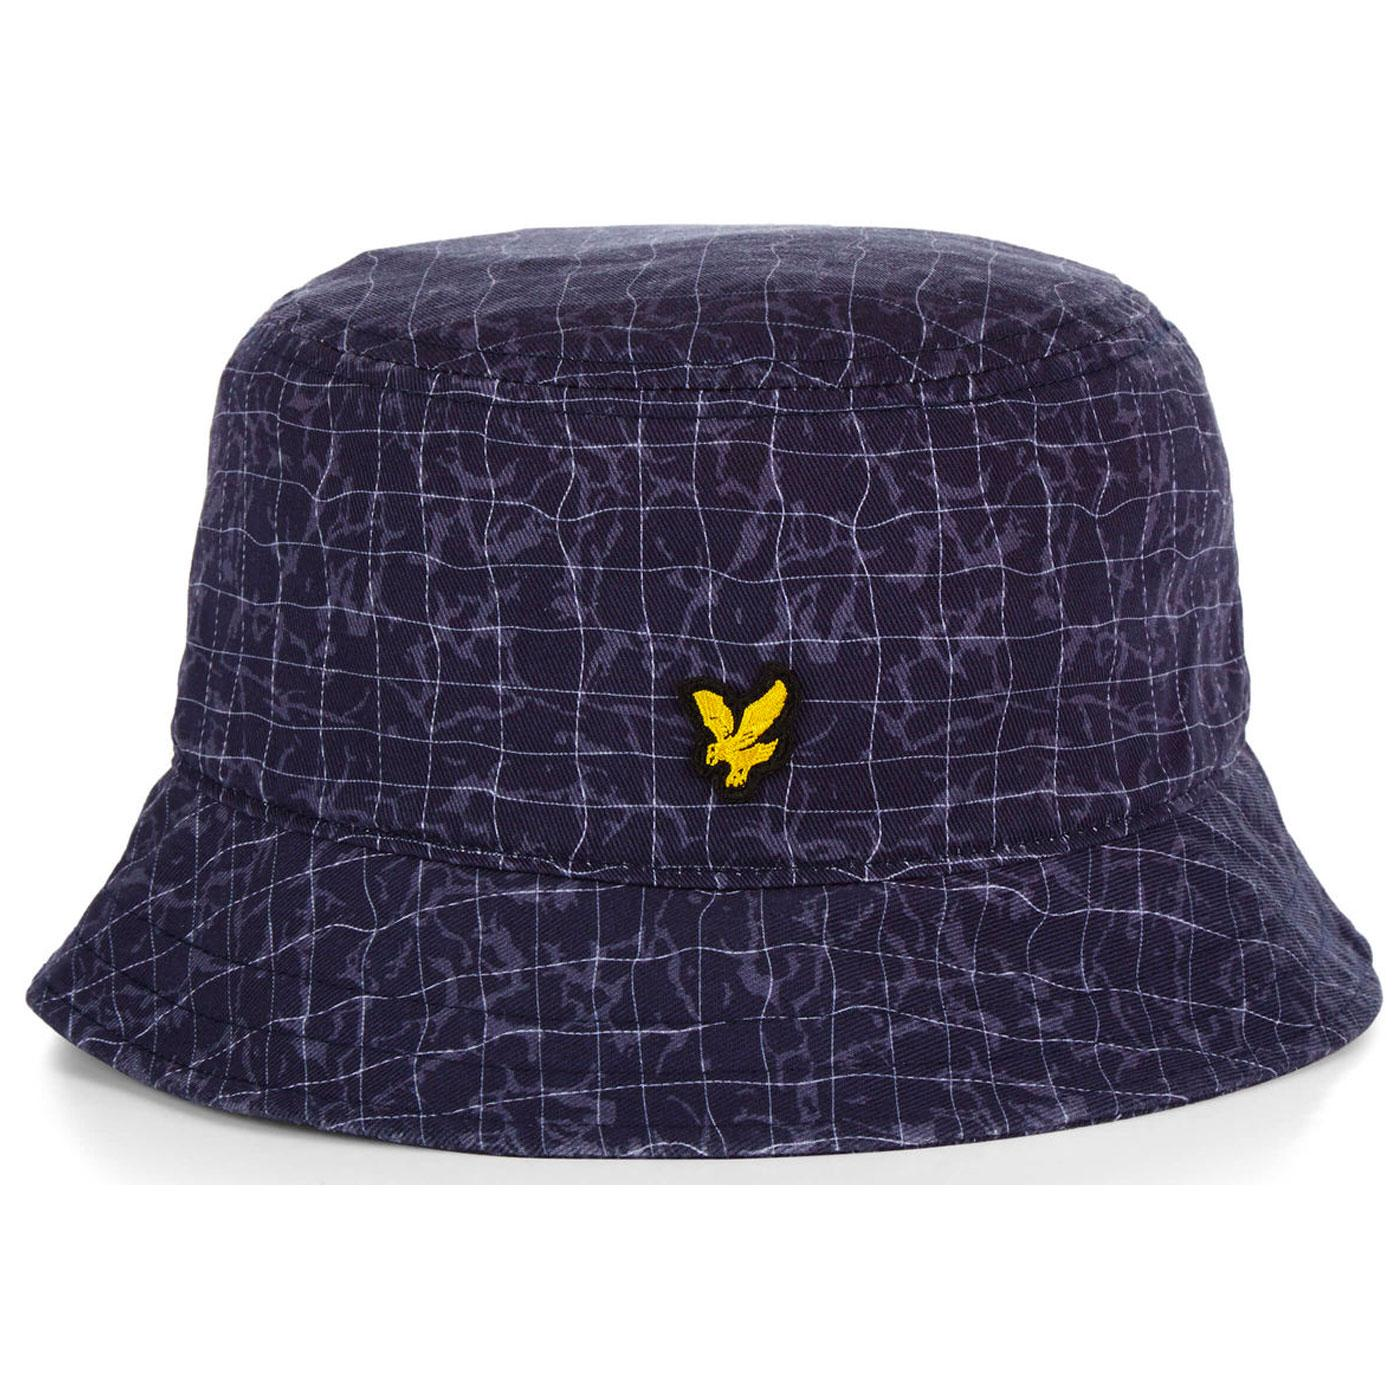 LYLE & SCOTT Retro 90s Pool Print Bucket Hat NAVY